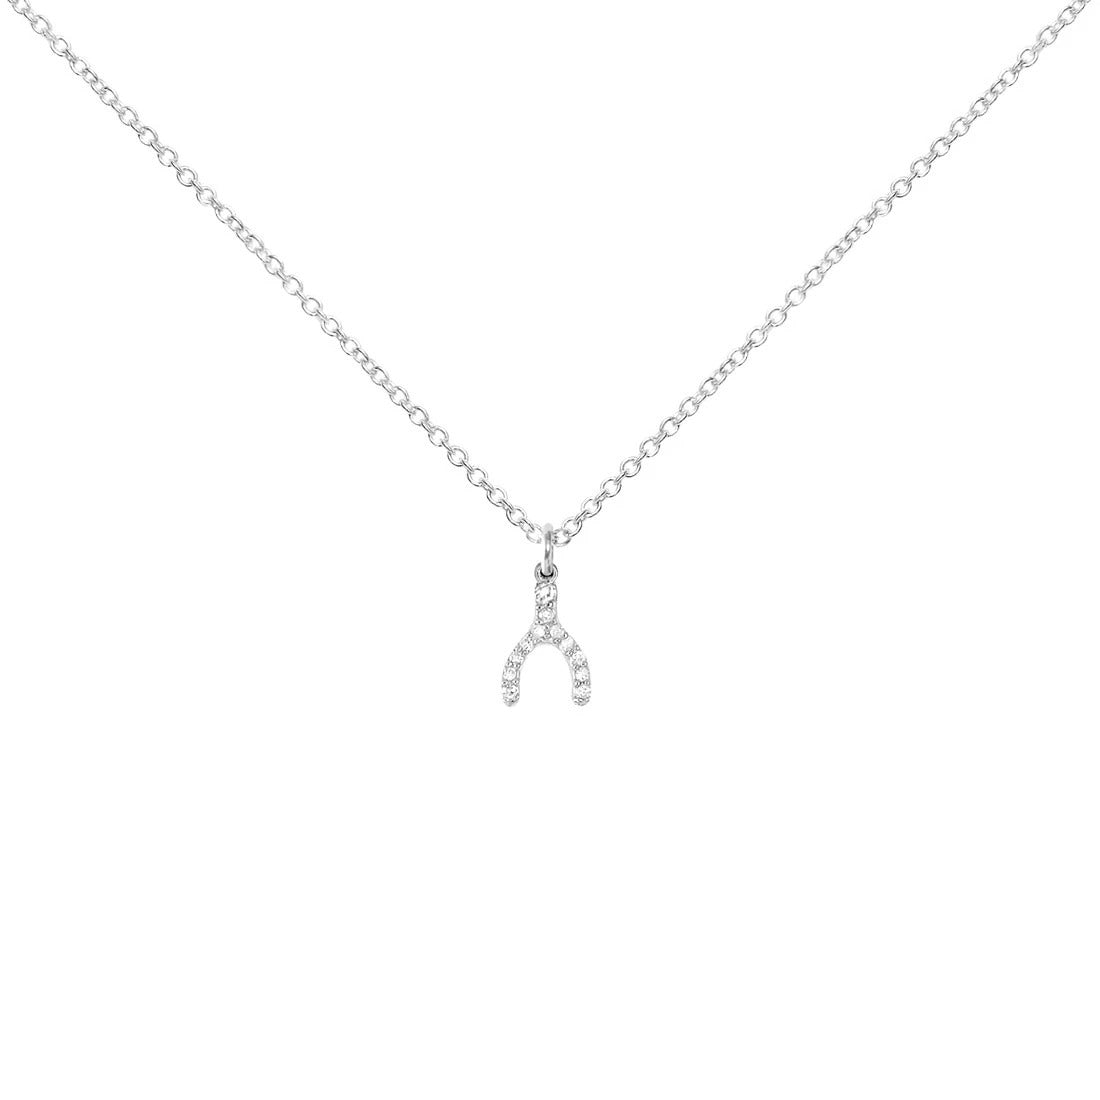 Sterling Silver Necklace with Diamond Wishbone